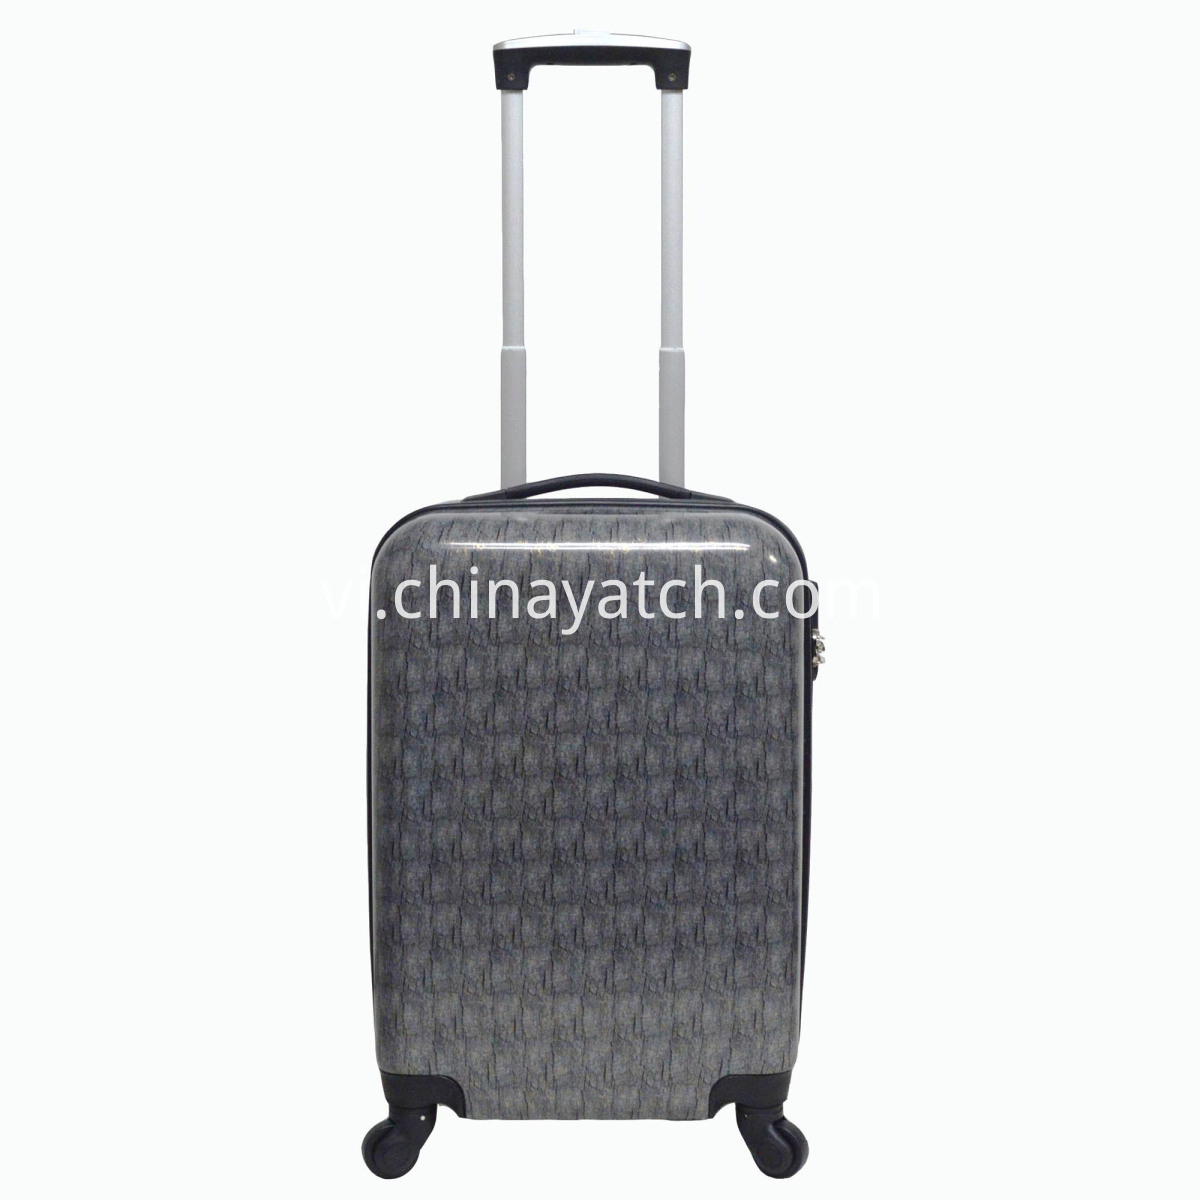 Cabin approved trolley luggage